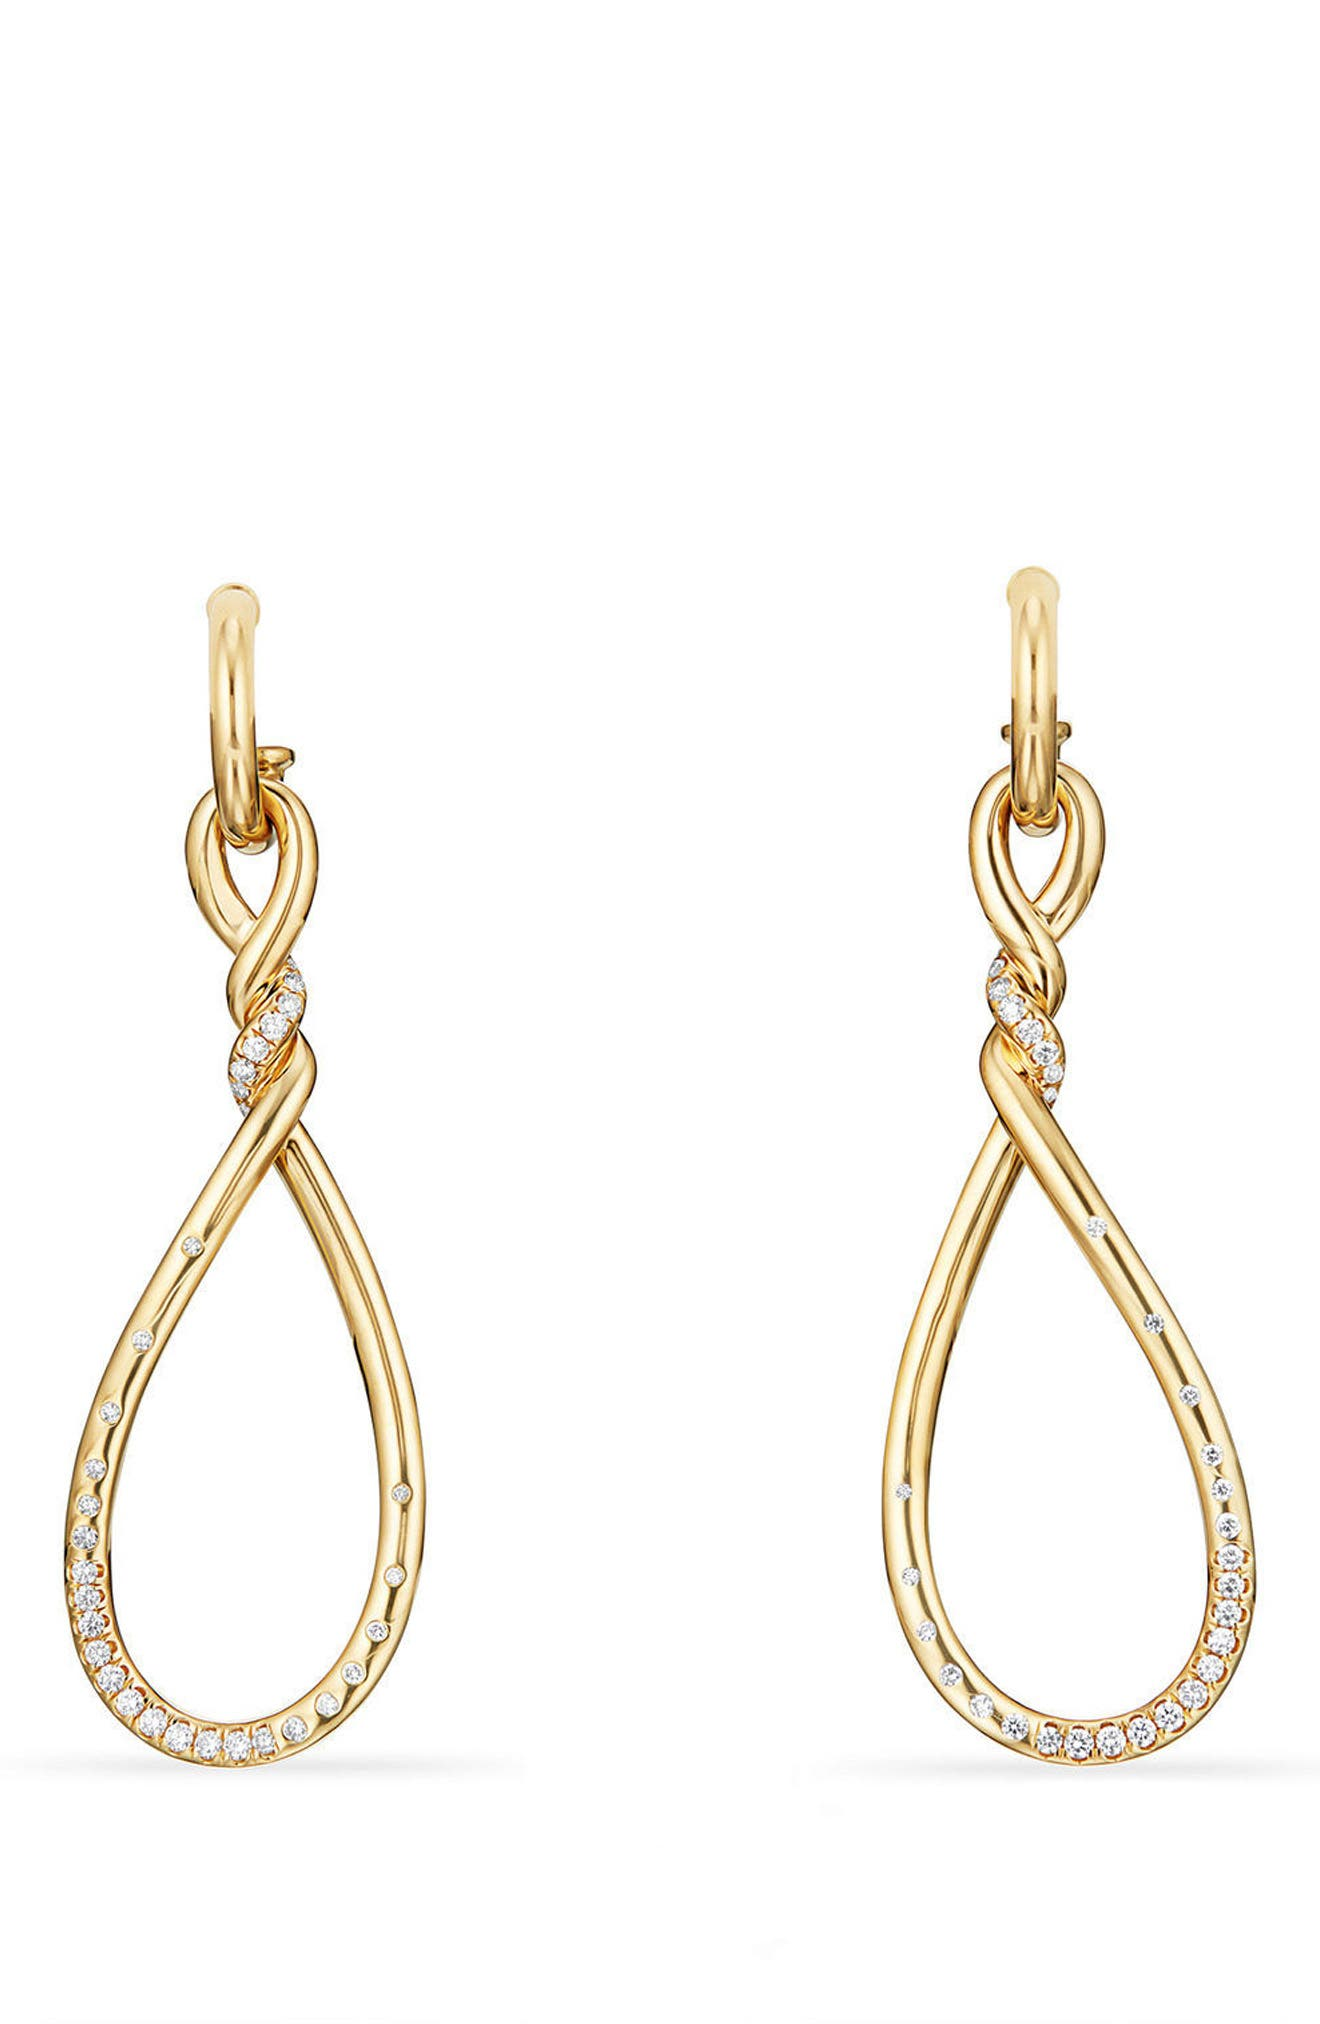 Alternate Image 1 Selected - David Yurman Continuance Large Drop Earrings with Diamonds in 18K Gold